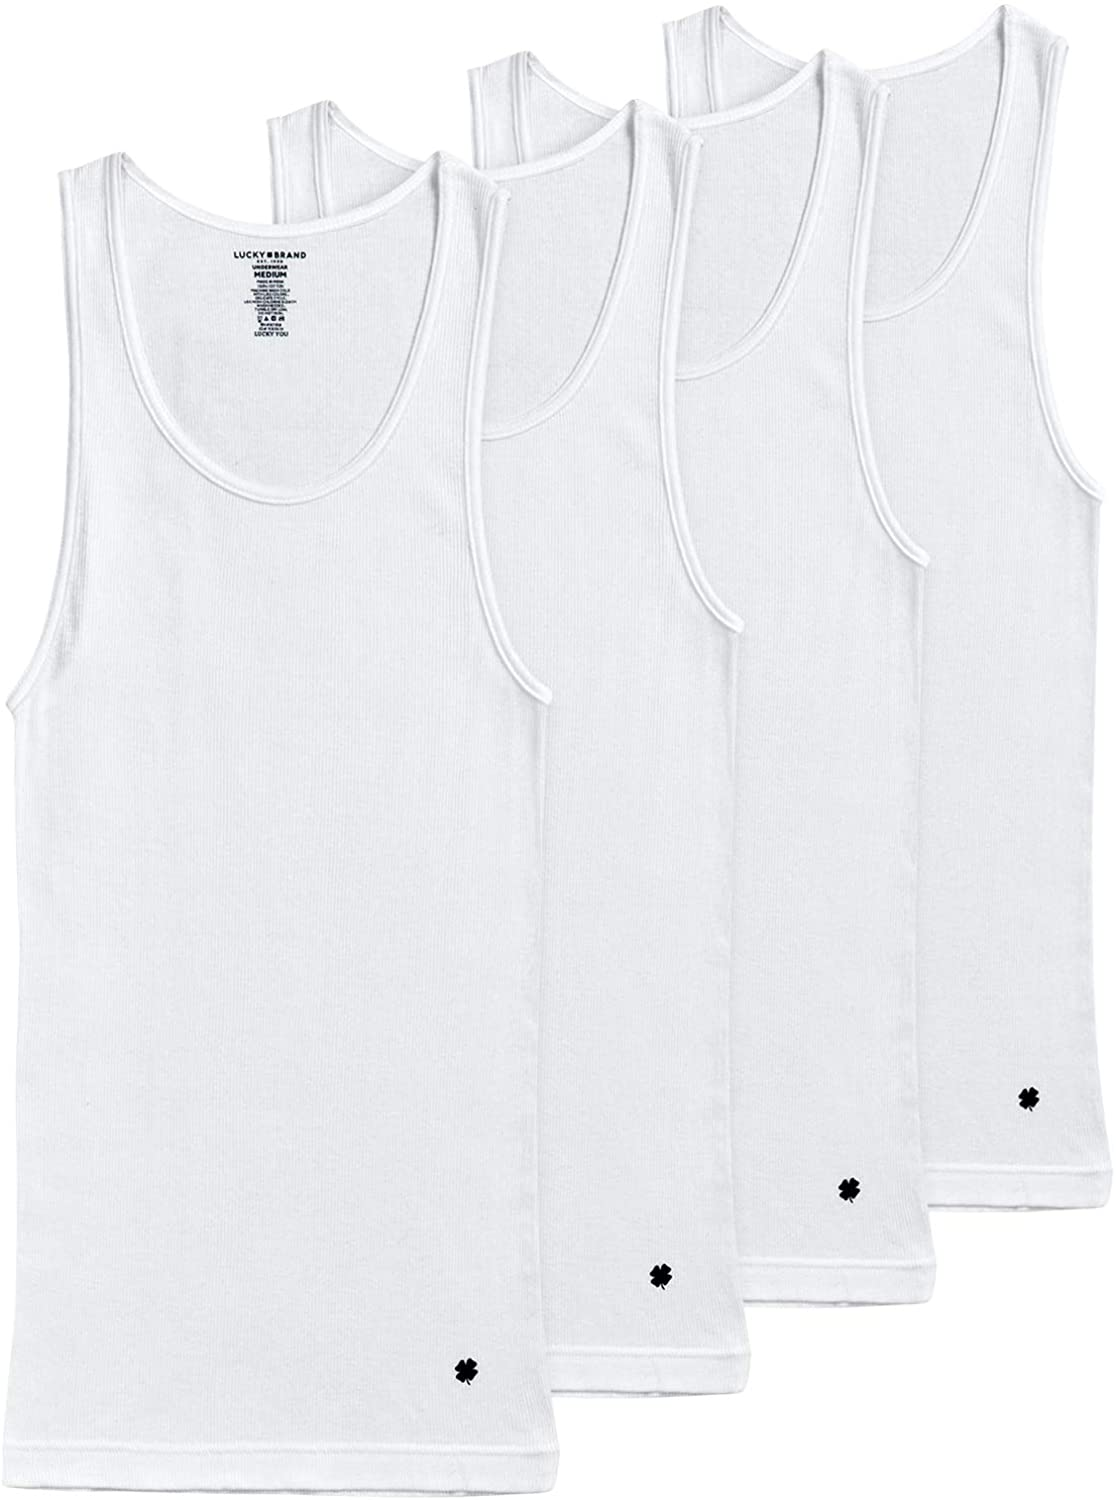 Lucky Brand Men's Limited price shop Classic A-Shirt Top Tank 4 Undershirt Pack